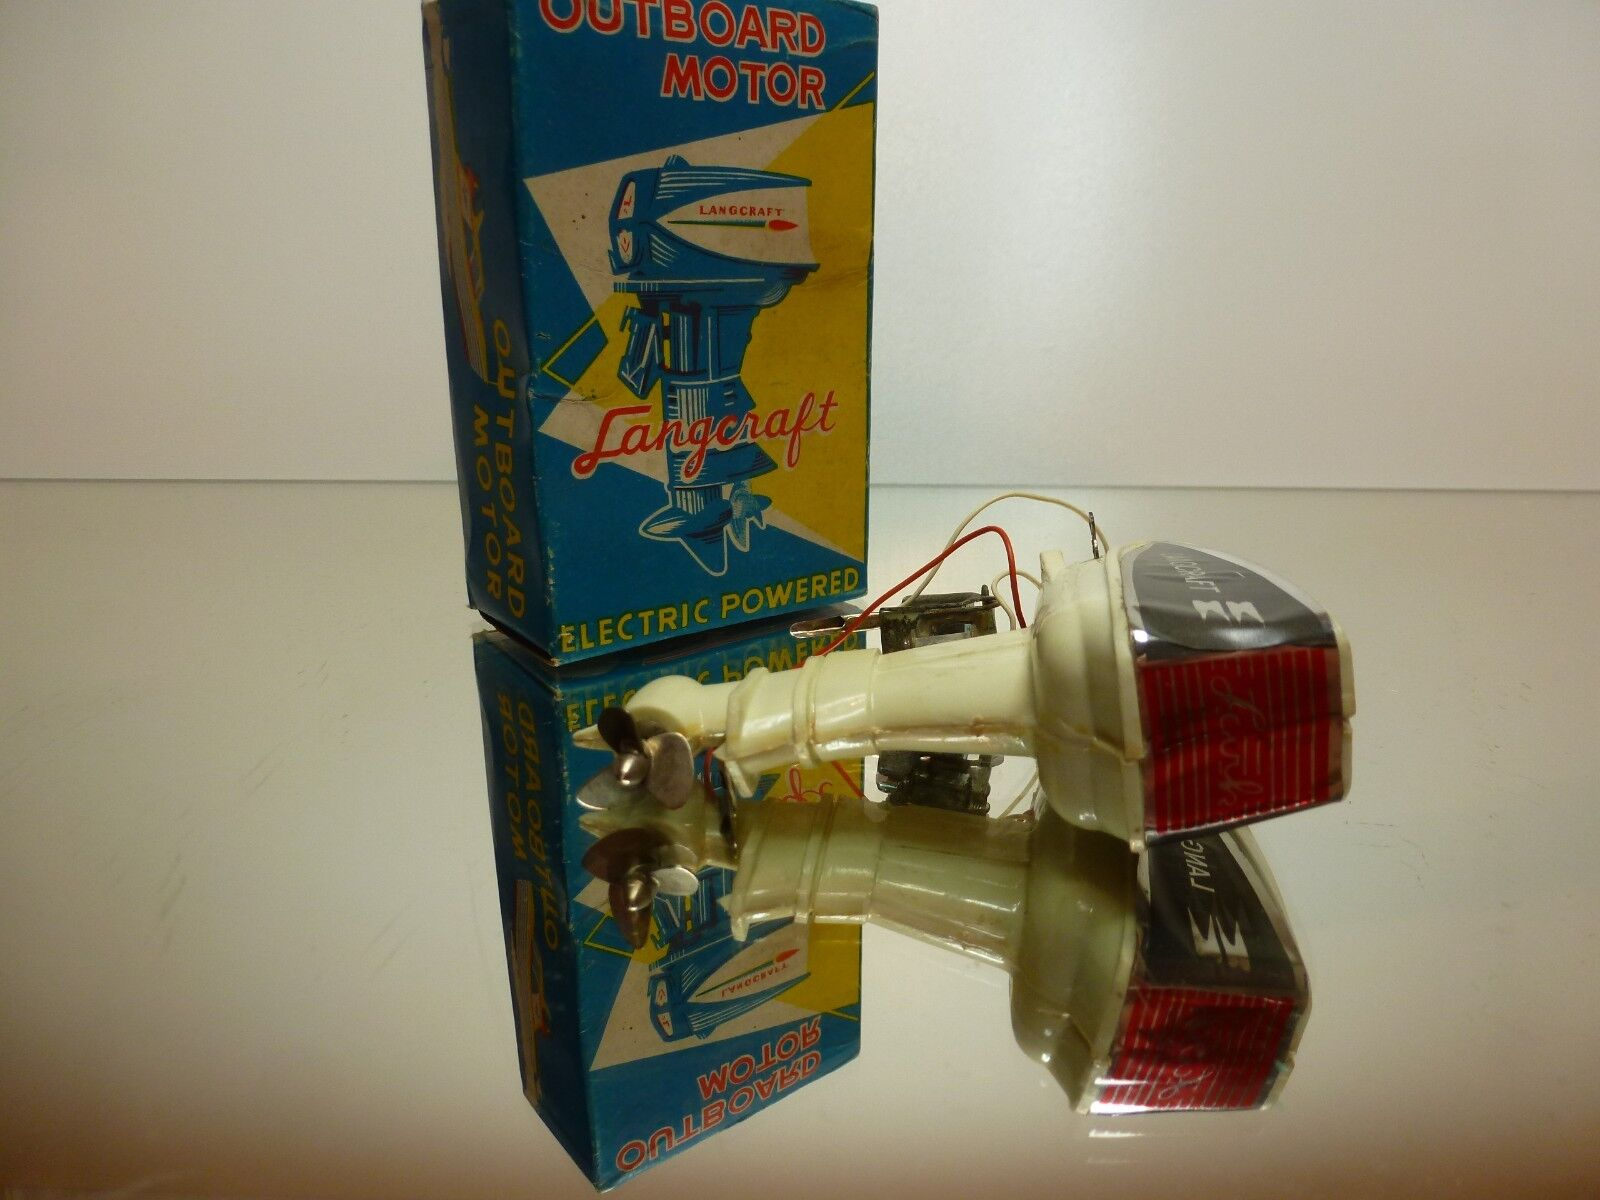 JAPAN LANGCRAFT OUTBOARD MOTOR MOTOR MOTOR - OFF WHITE H9.0cm - GOOD CONDITION IN BOX b55bc9